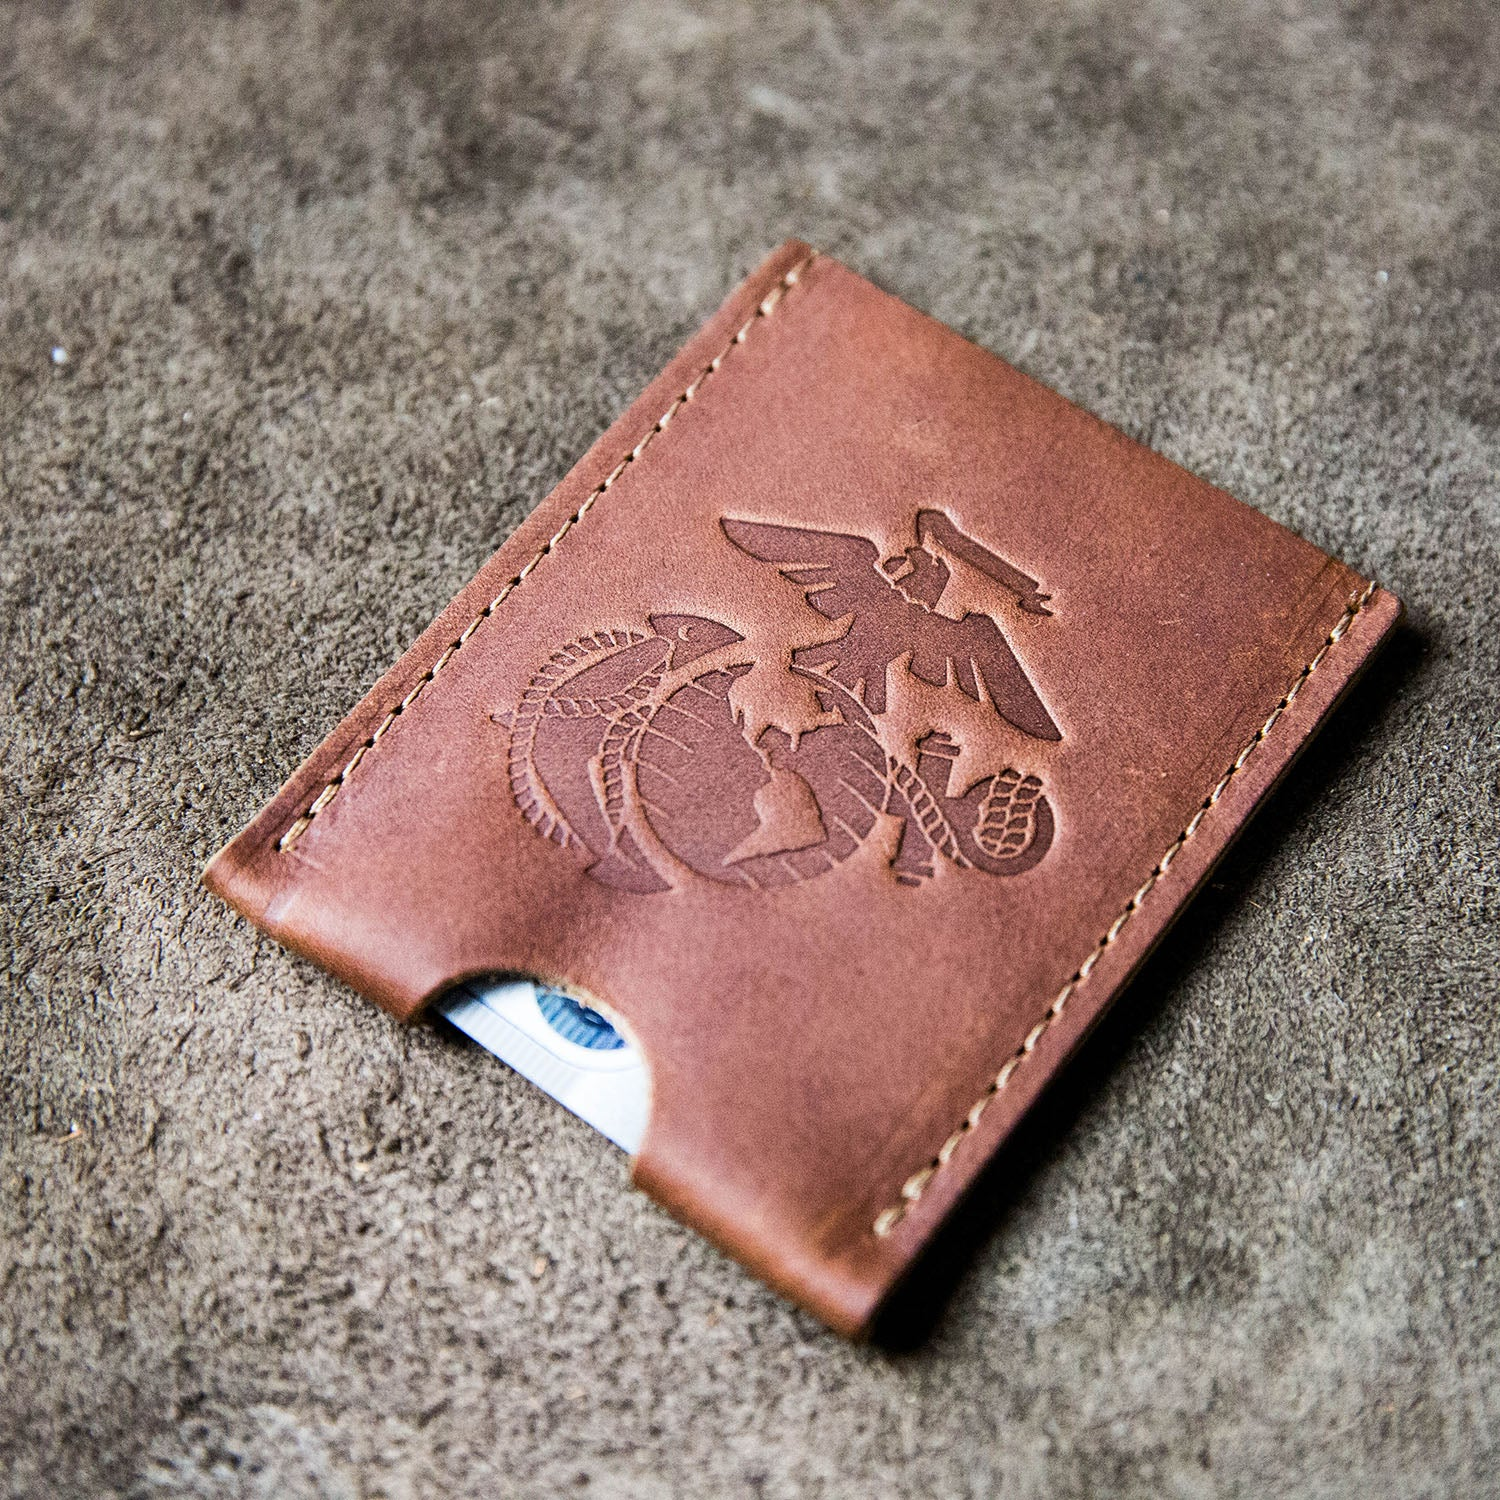 The Officially Licensed Marine Corps Jefferson Fine Leather Card Holder Wallet